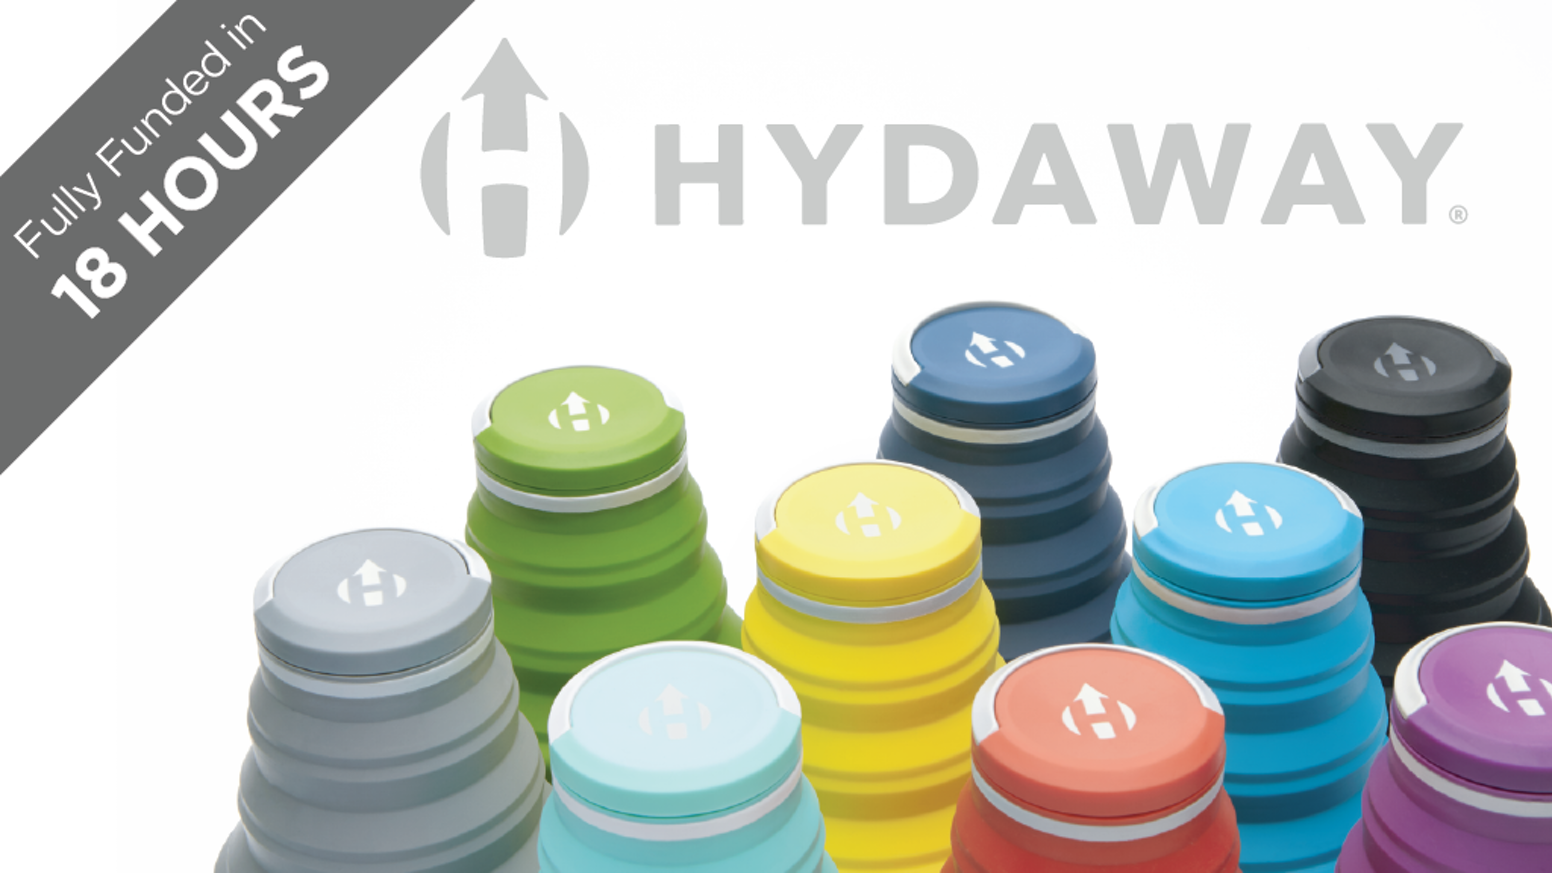 Now with more sizes, taste filters, and a streamlined design, this next generation of collapsible water bottles is better than ever! Click below to order on our website!